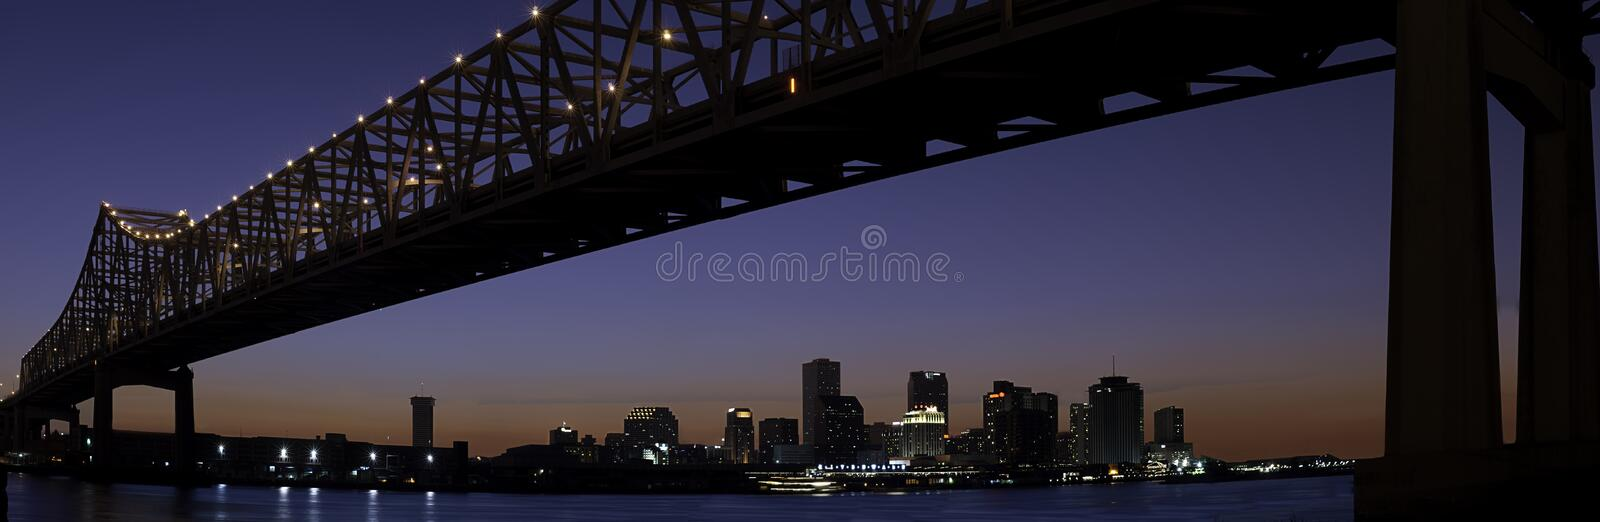 New Orleans Skyline and Mississippi River Bridge royalty free stock images